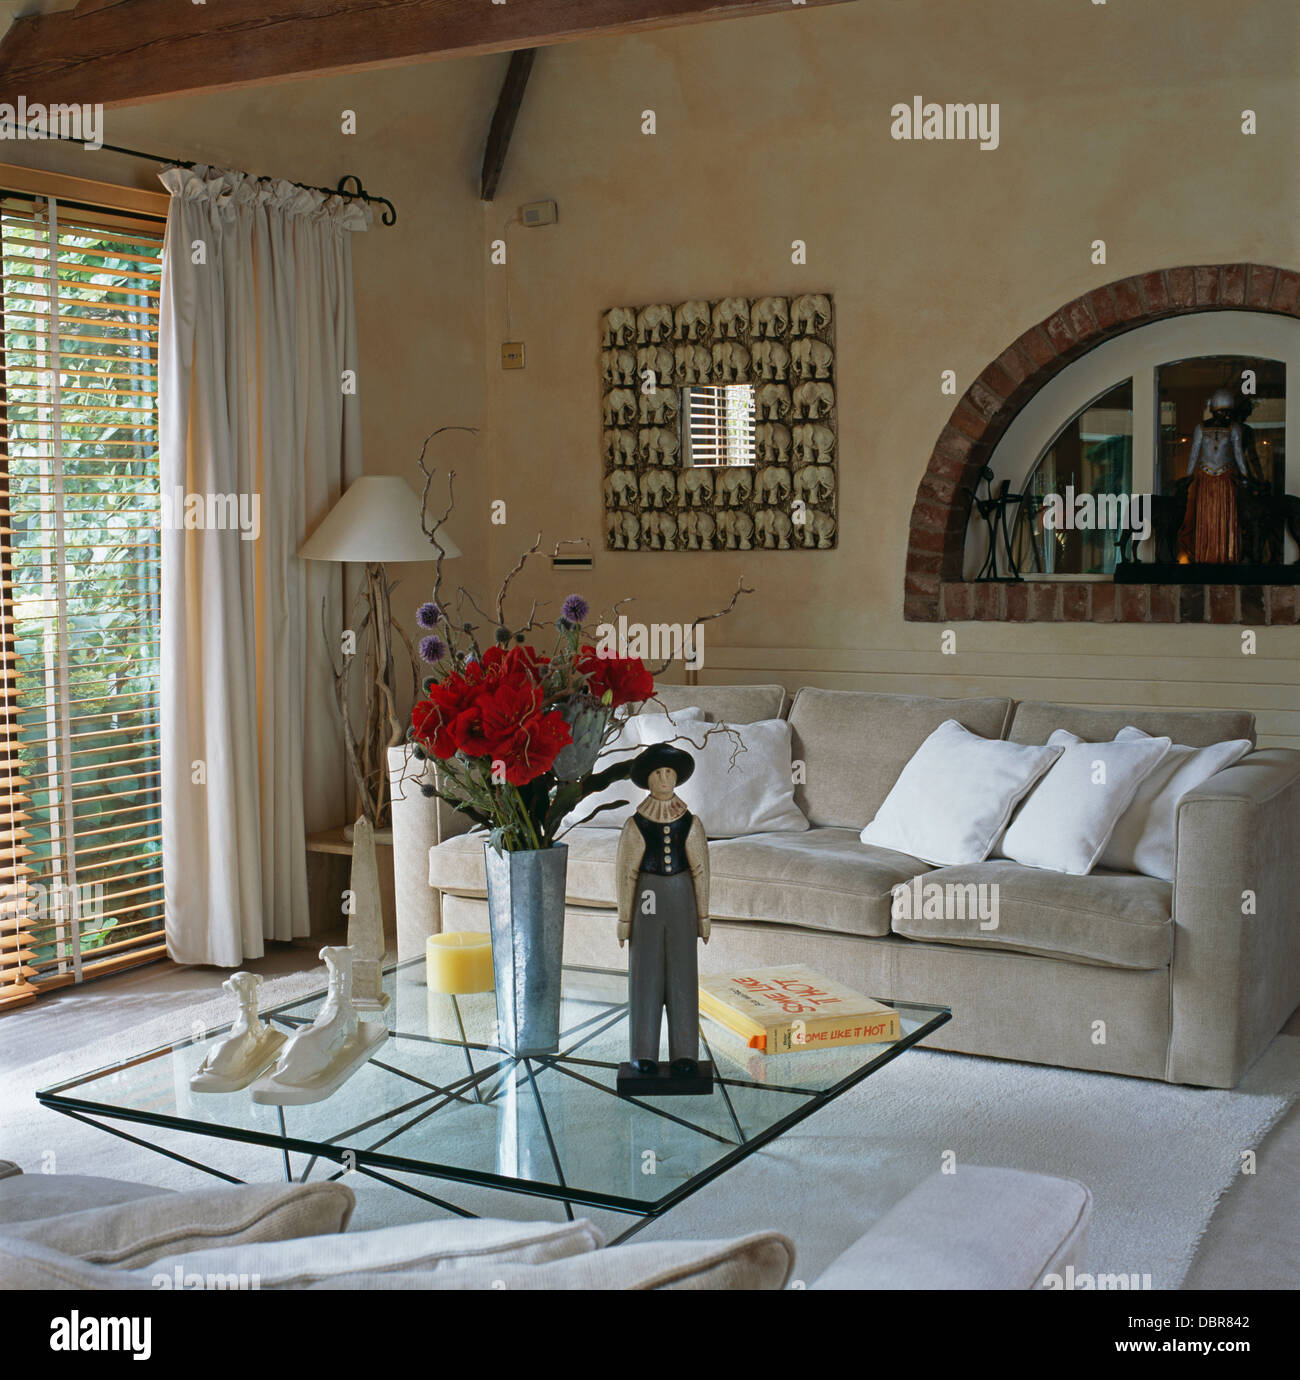 Wooden Figure And Vase Of Red Roses On Glass Coffee Table In Modern Living Room With Gray Velour Sofa Cream Curtains